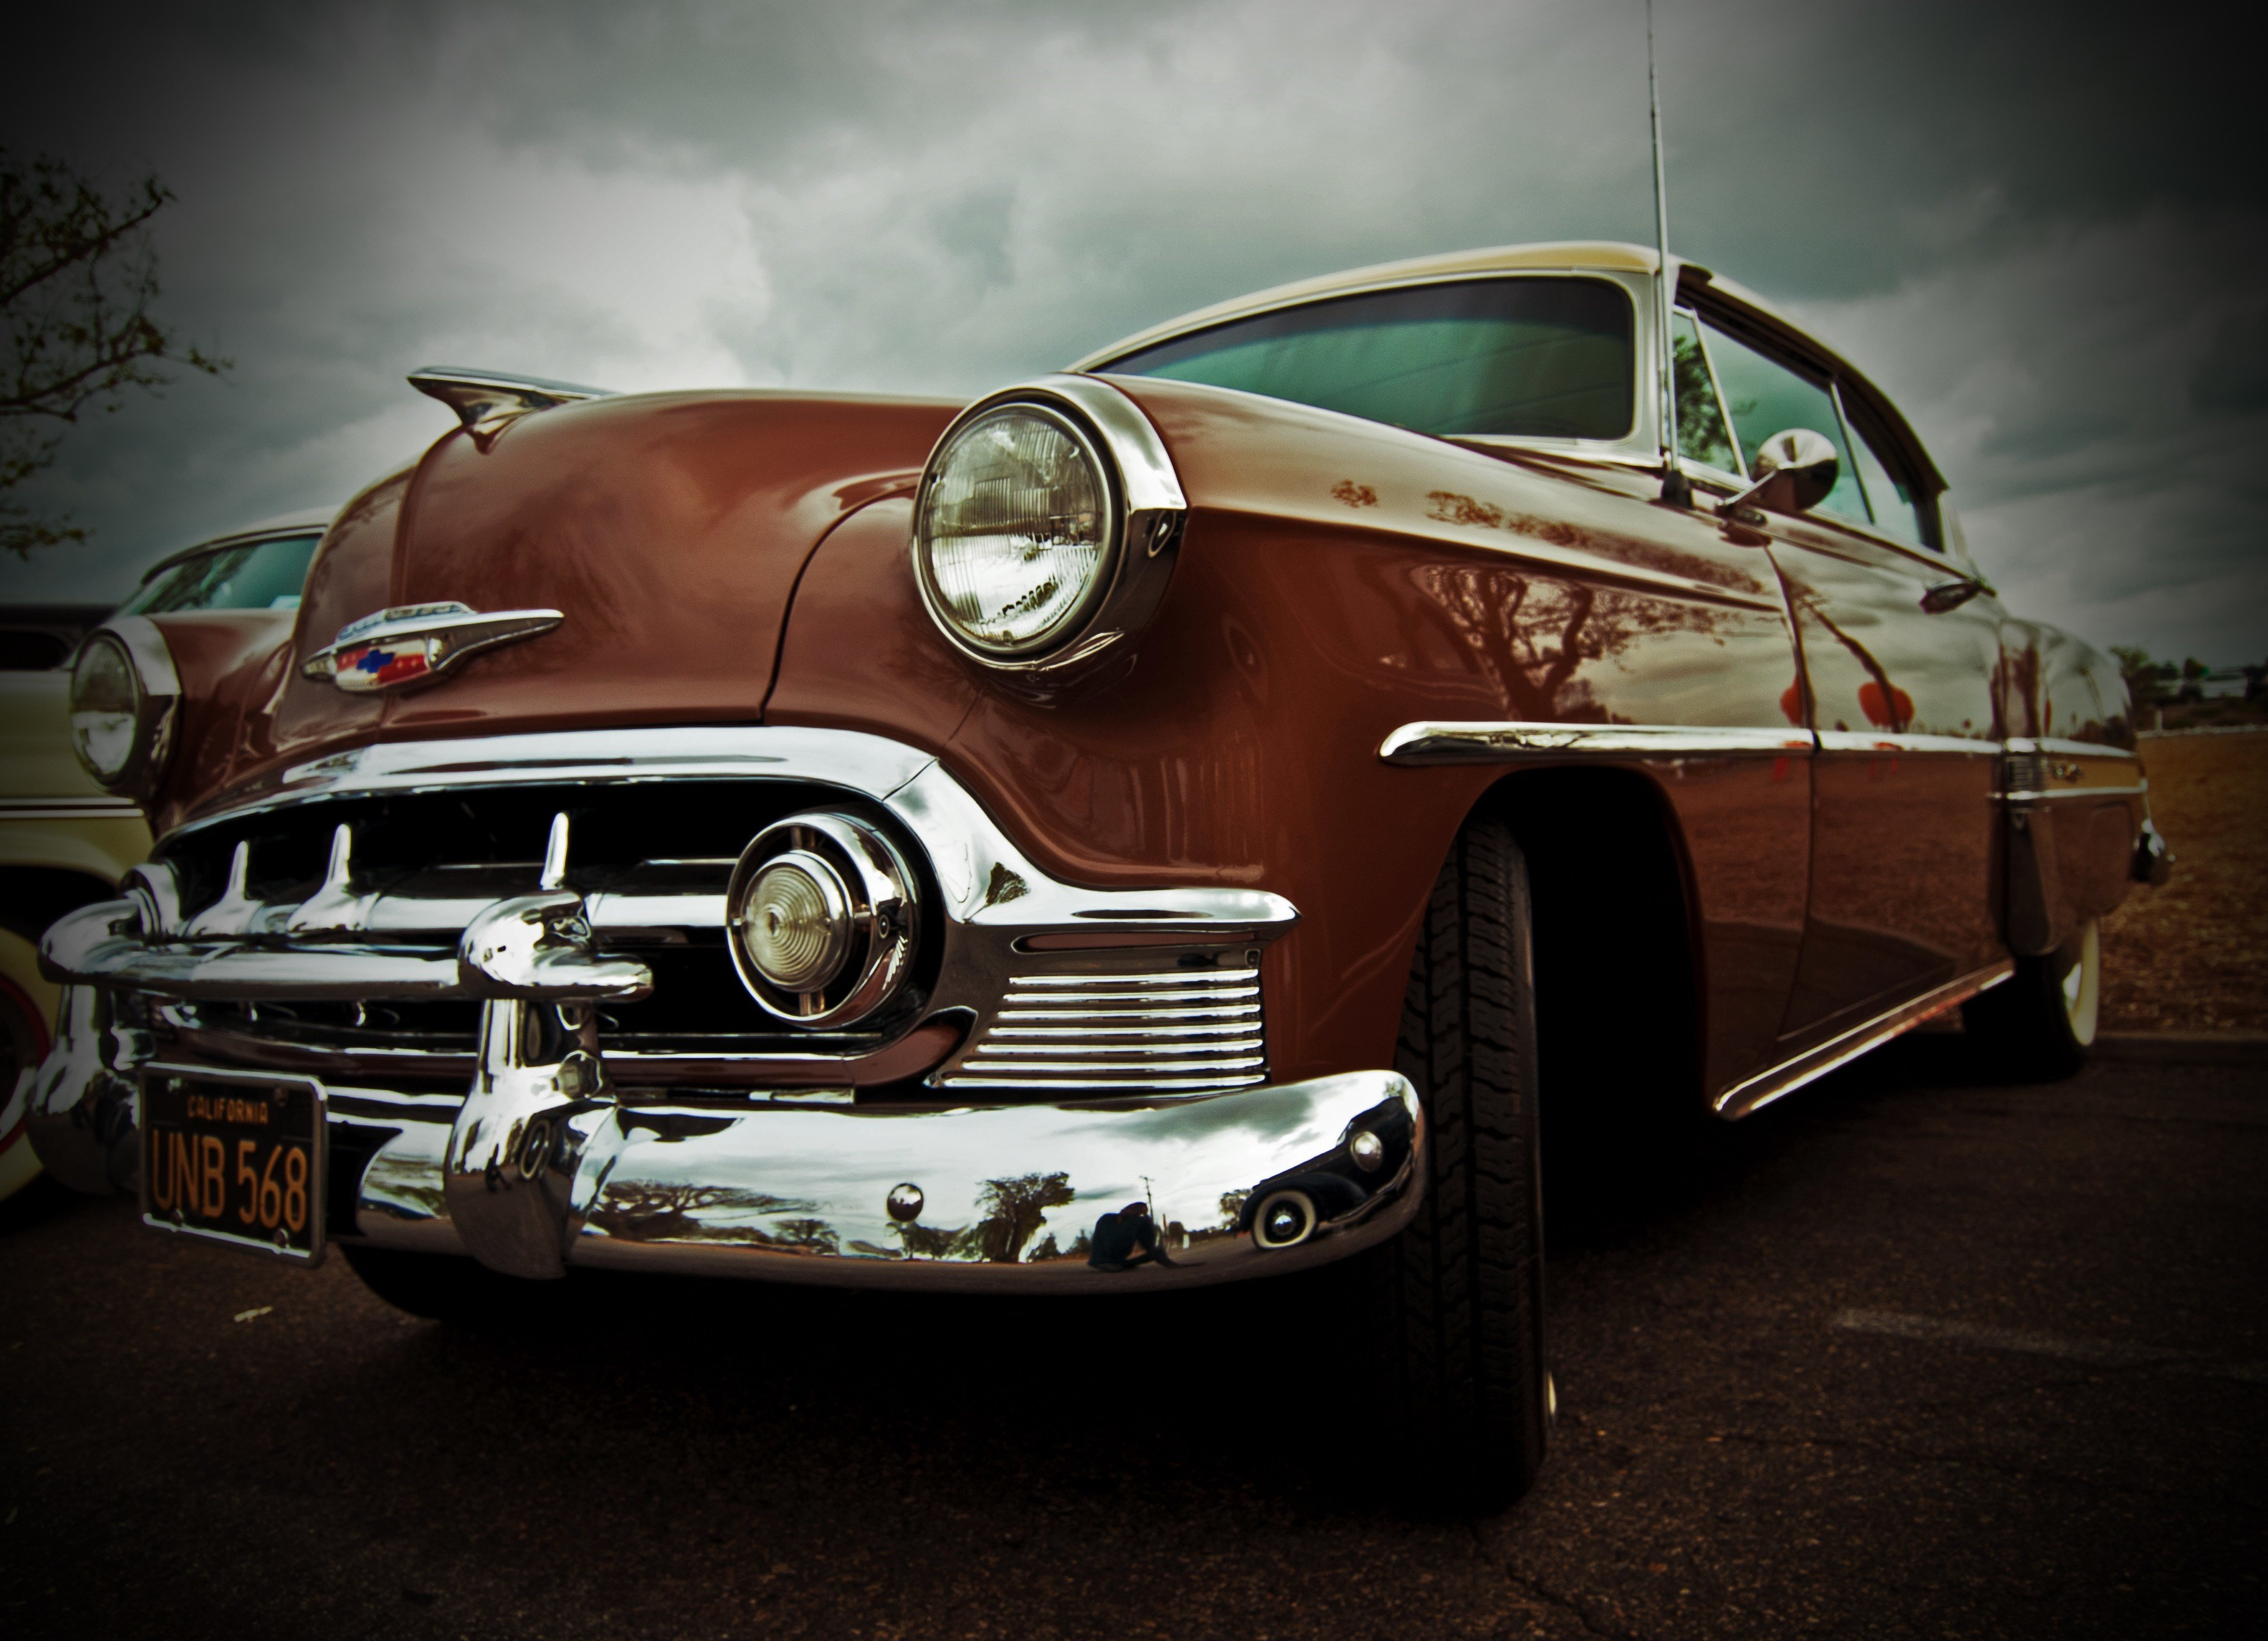 Latest Classic Car My Camera Journal Free Download